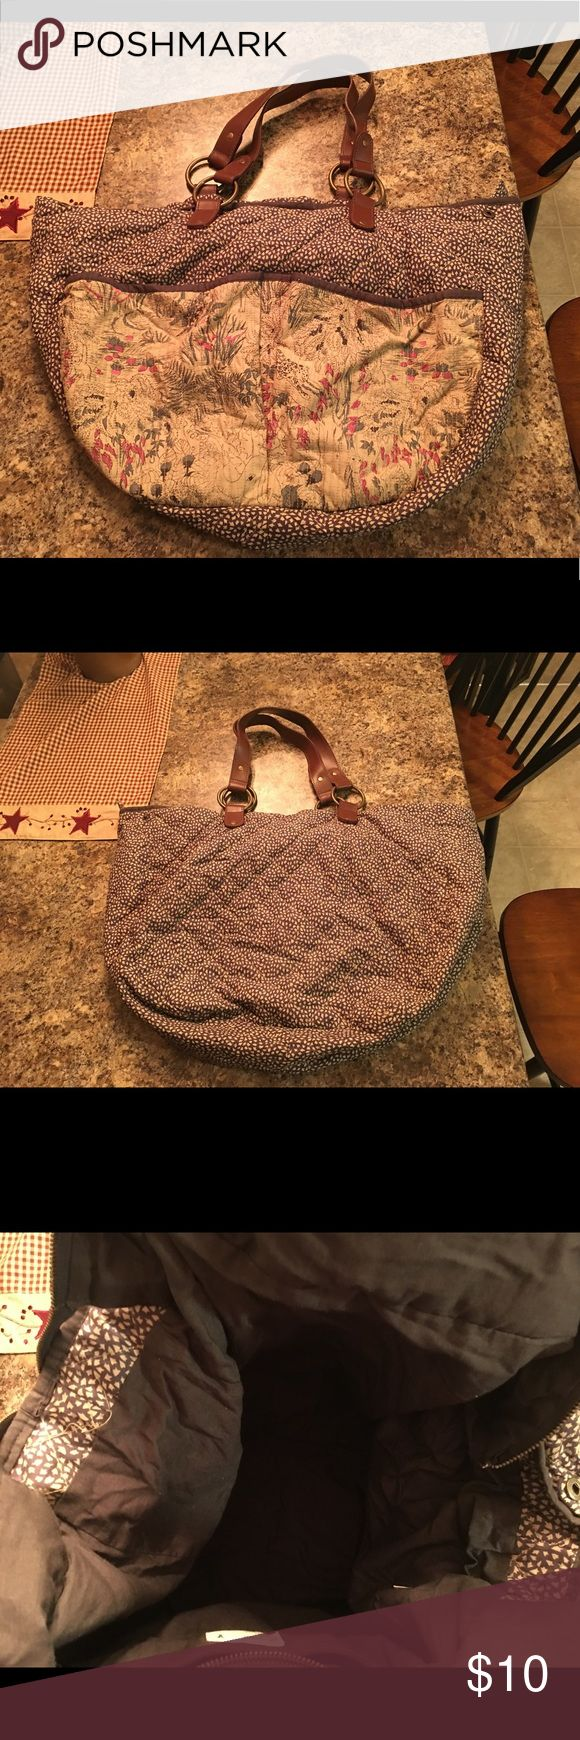 """Large American Eagle tote bag Large, quilted AE tote bag. Zip closure. Two large outer pockets, one zipped inner pocket. Great overnight bag. Excellent condition. Smoke free home. Apx 22""""x18"""" American Eagle Outfitters Bags Totes"""